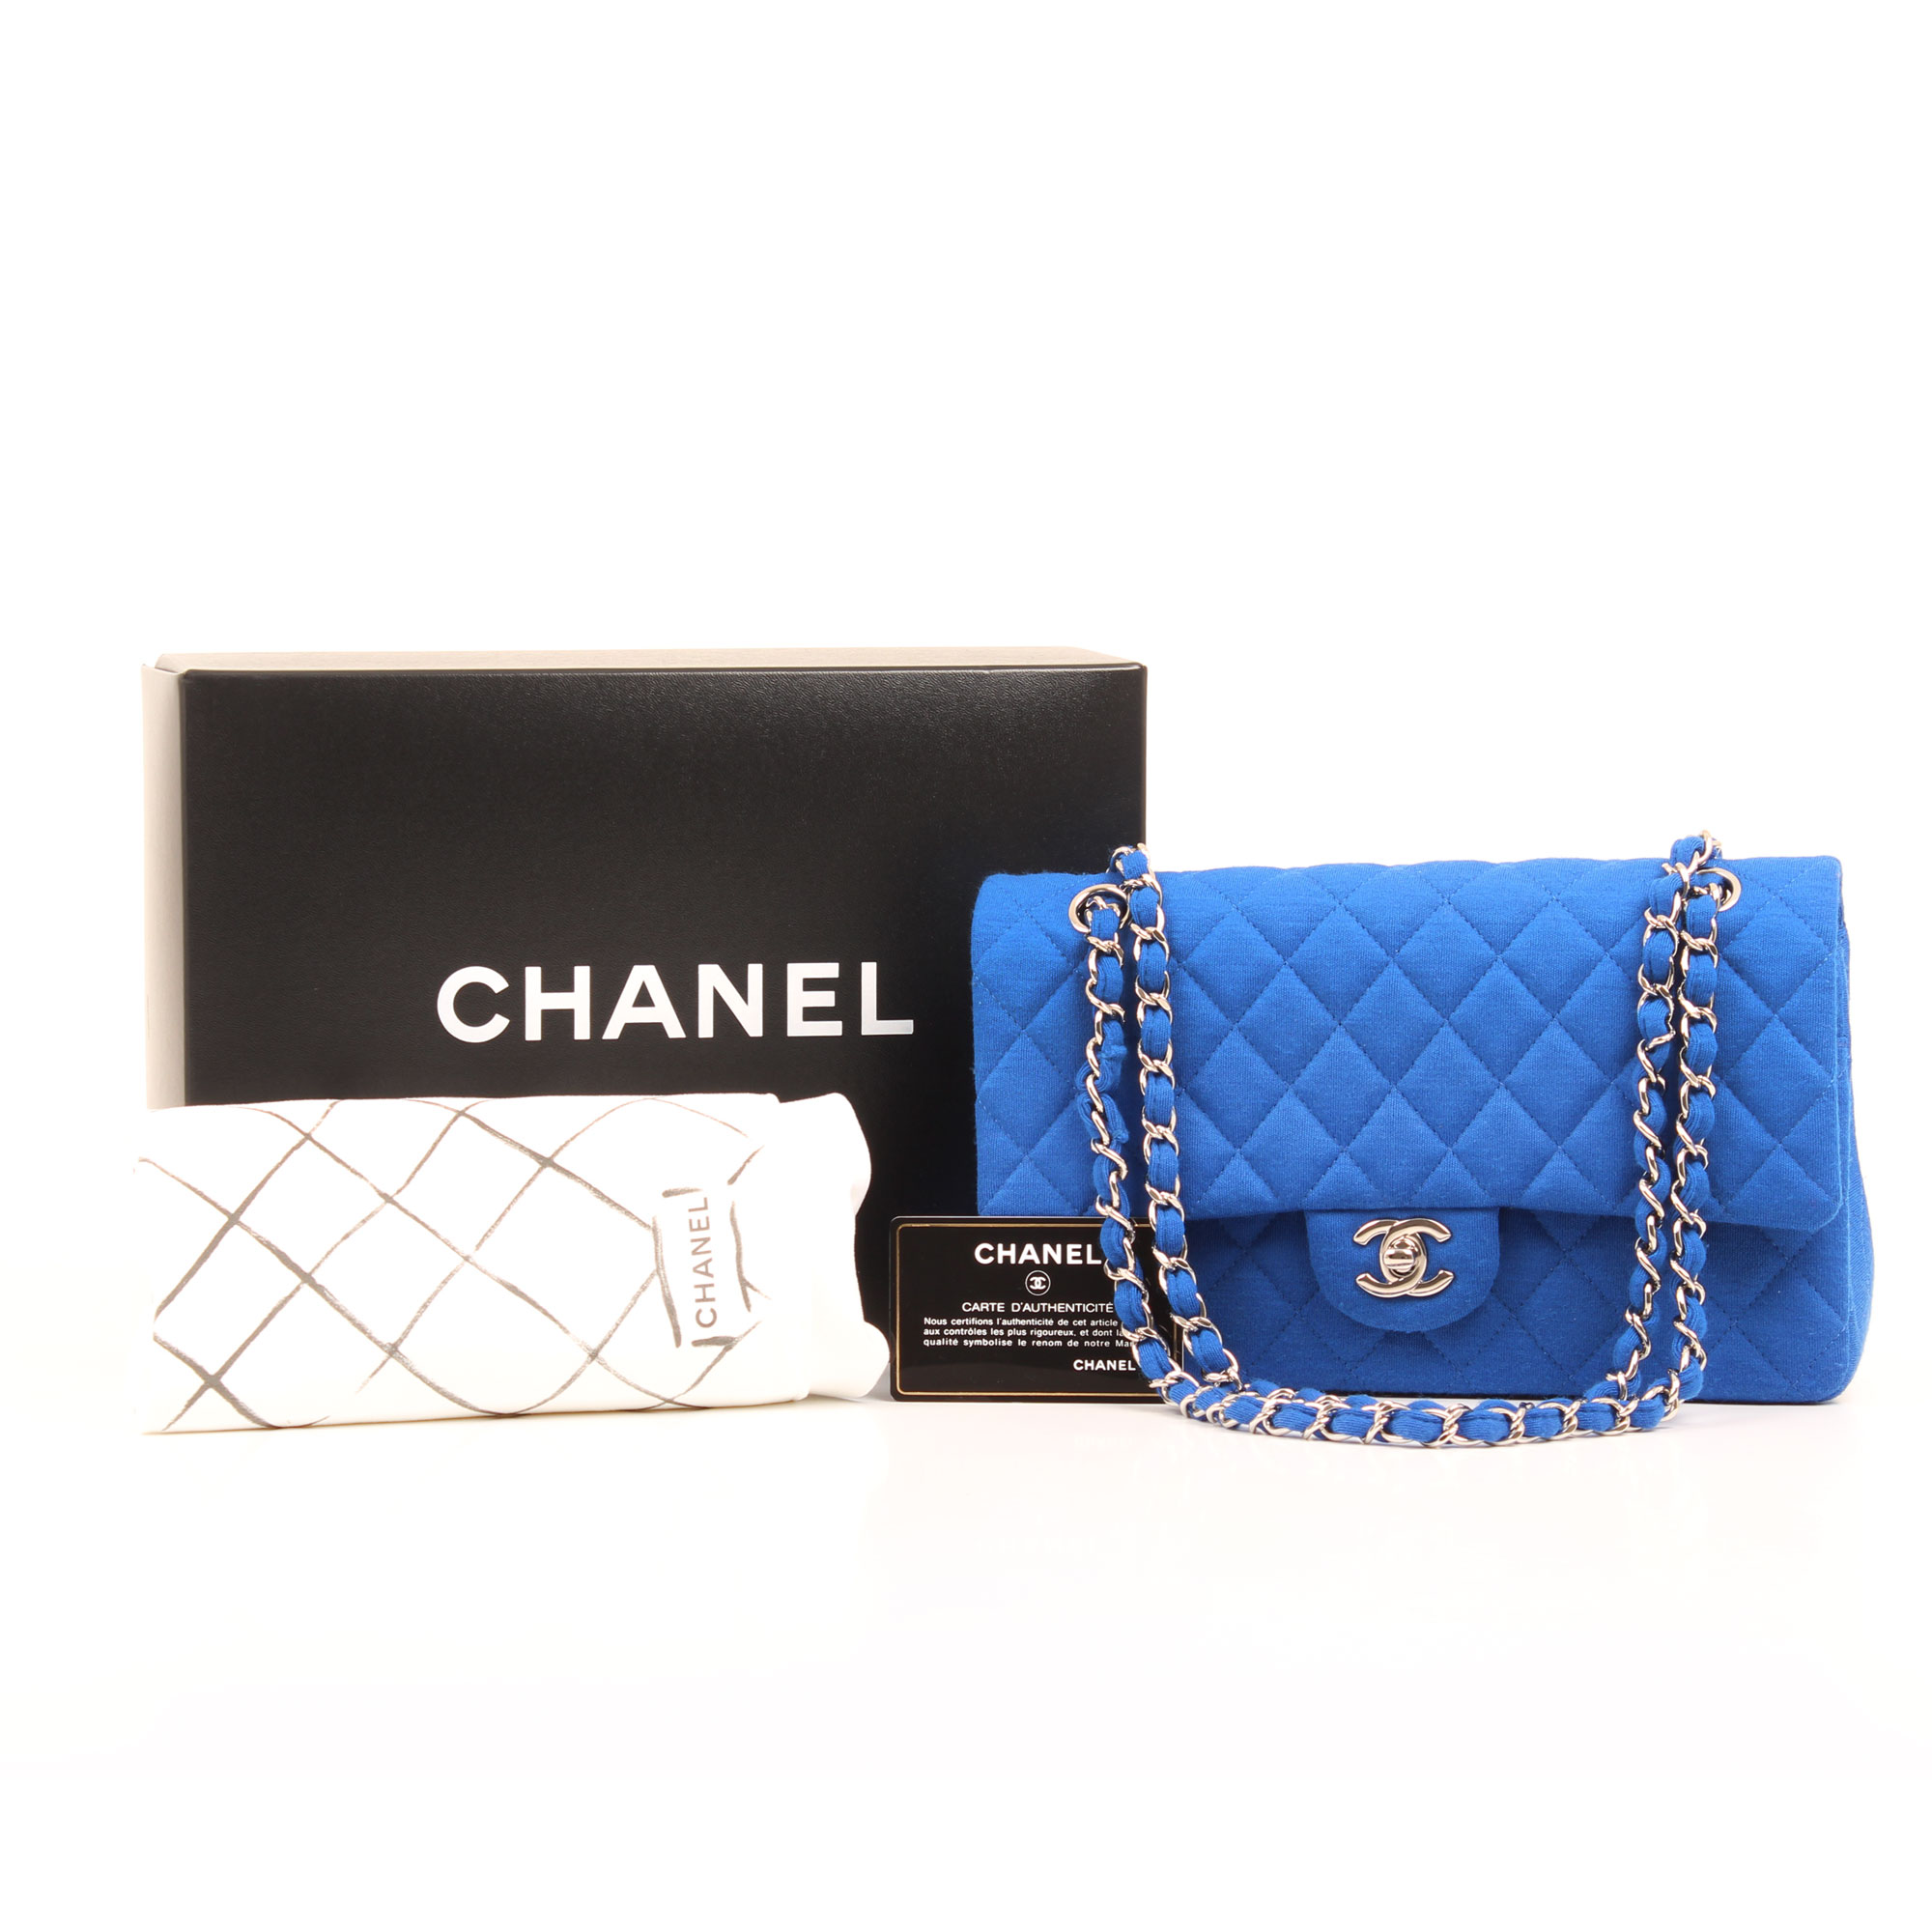 0d0b2787b7fe ... quilted timeless double flap bag. Imagen de los extras del bolso chanel  classic flap jersey azul